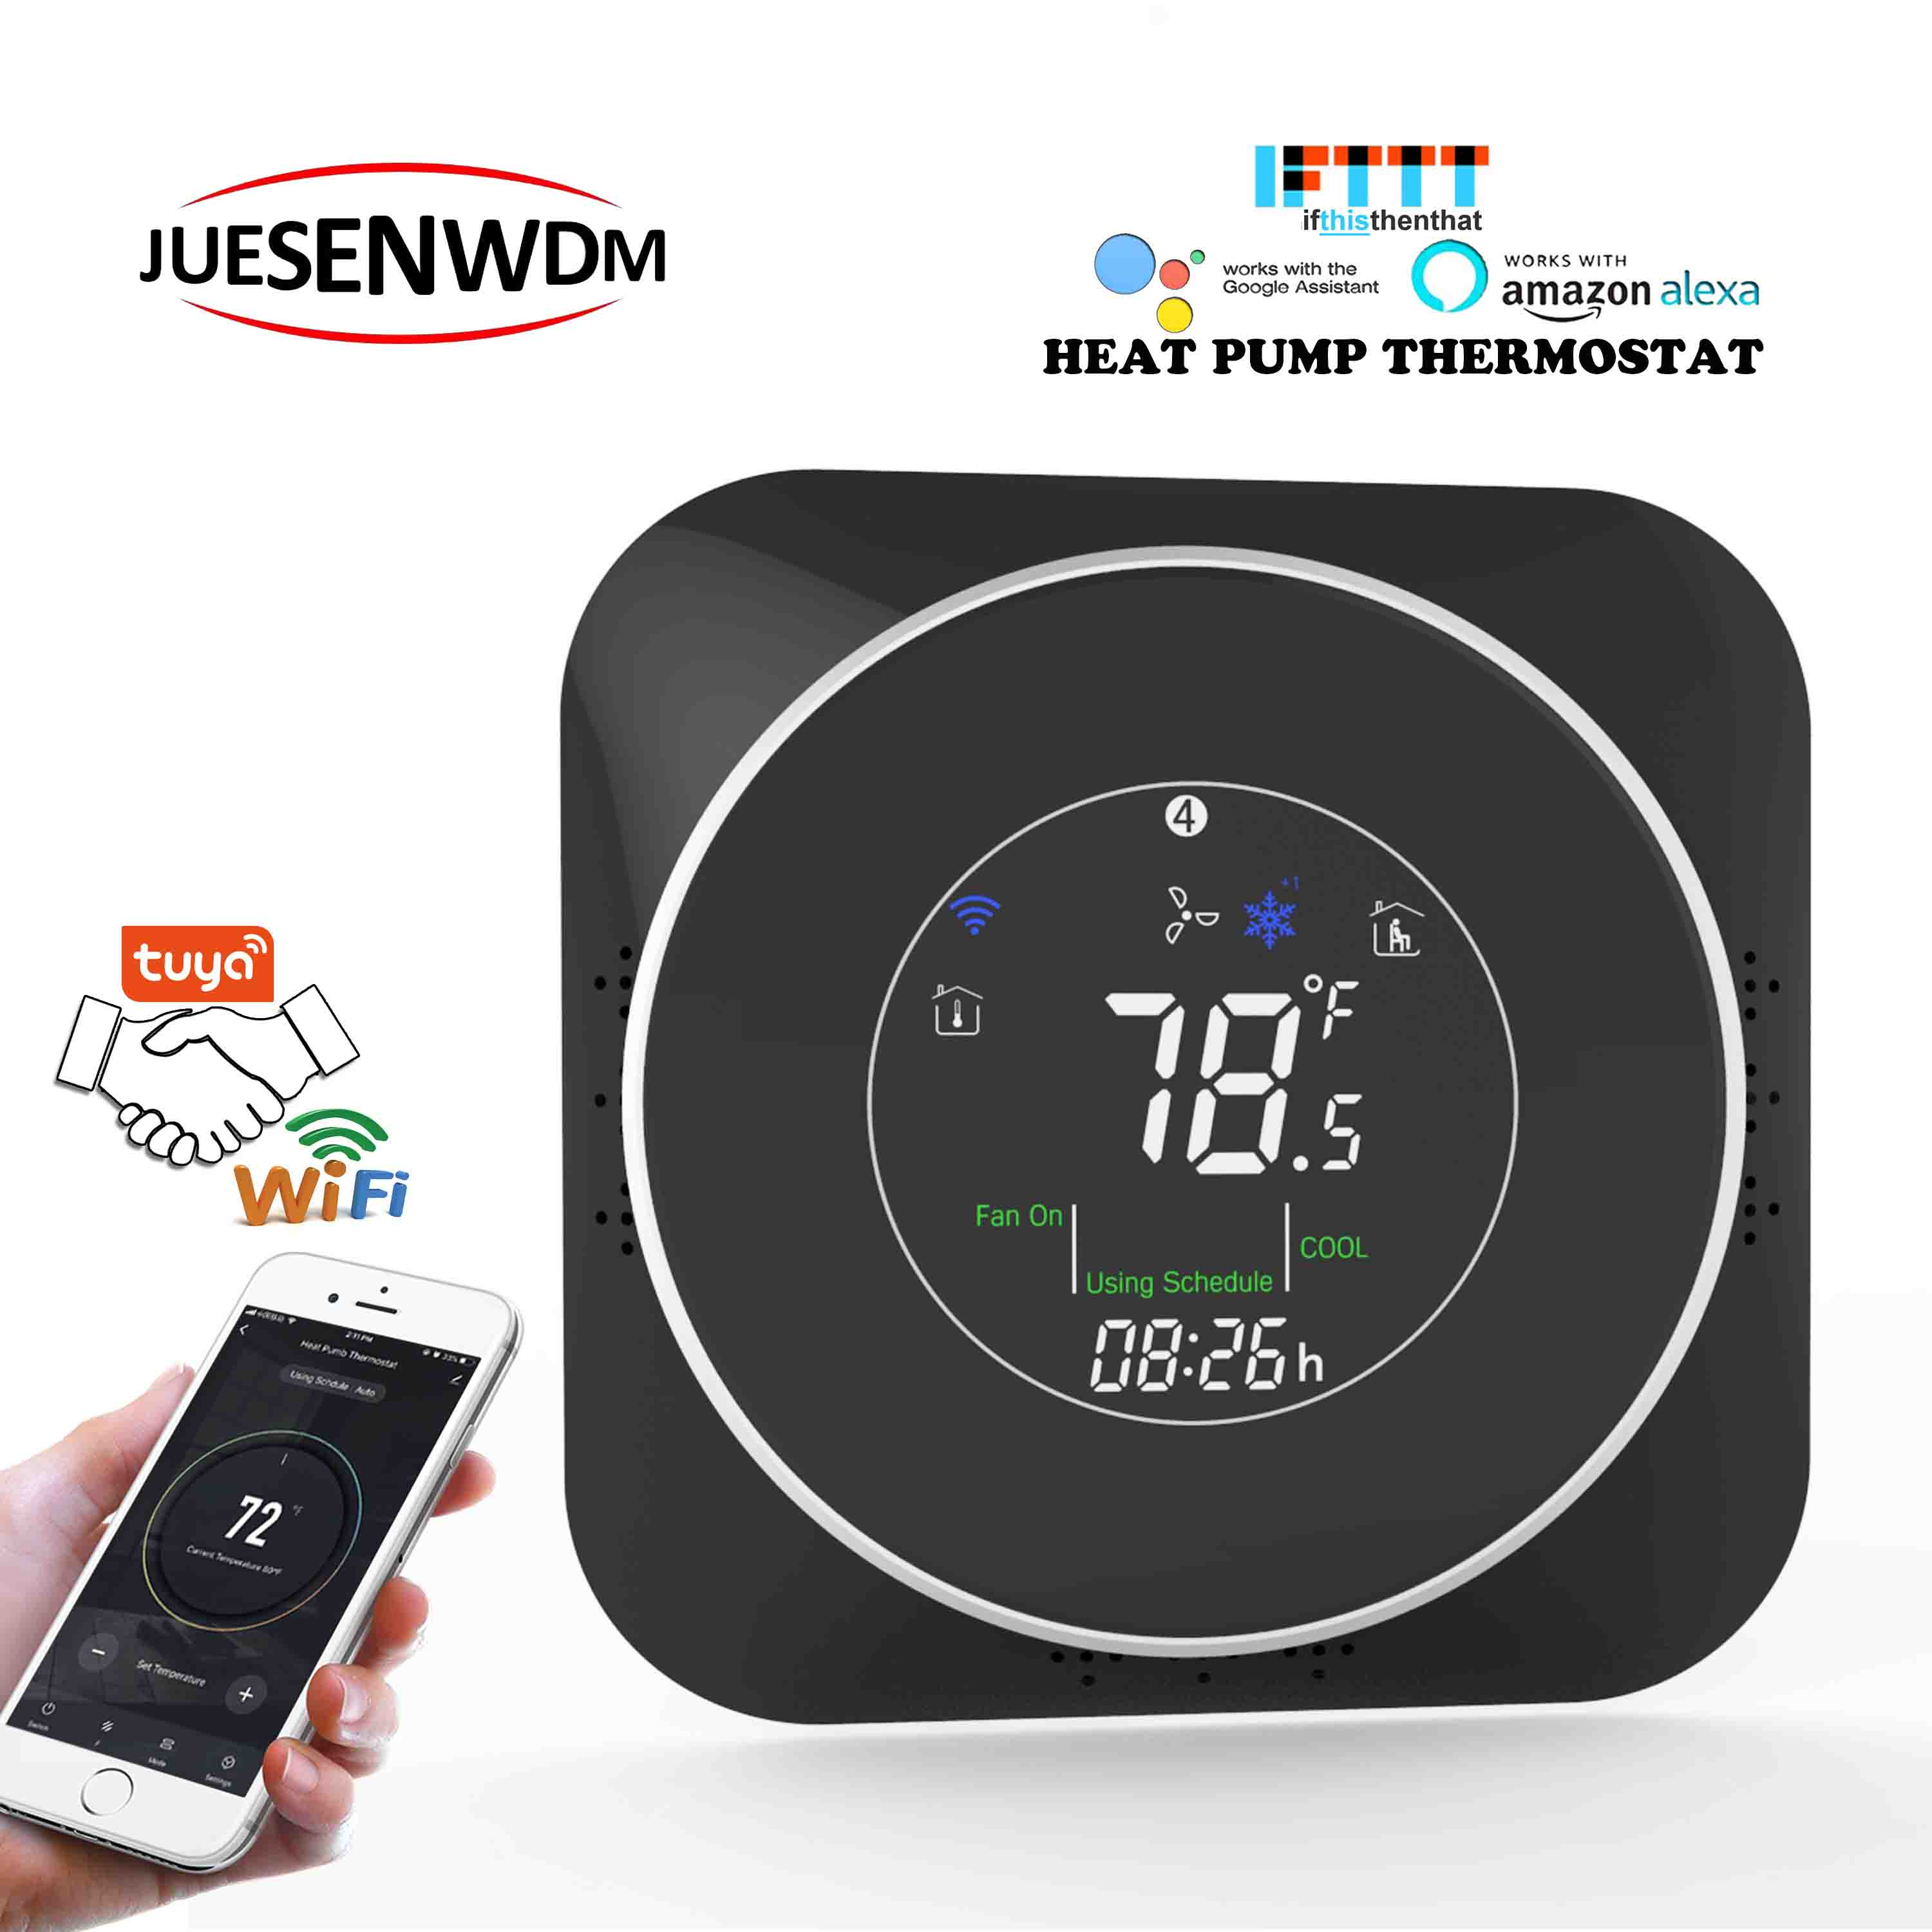 24VAC ℃&℉ Changeable Heat Pump Heat Transfer Controller THERMOSTAT WIFI For Room Temperature Adjustment